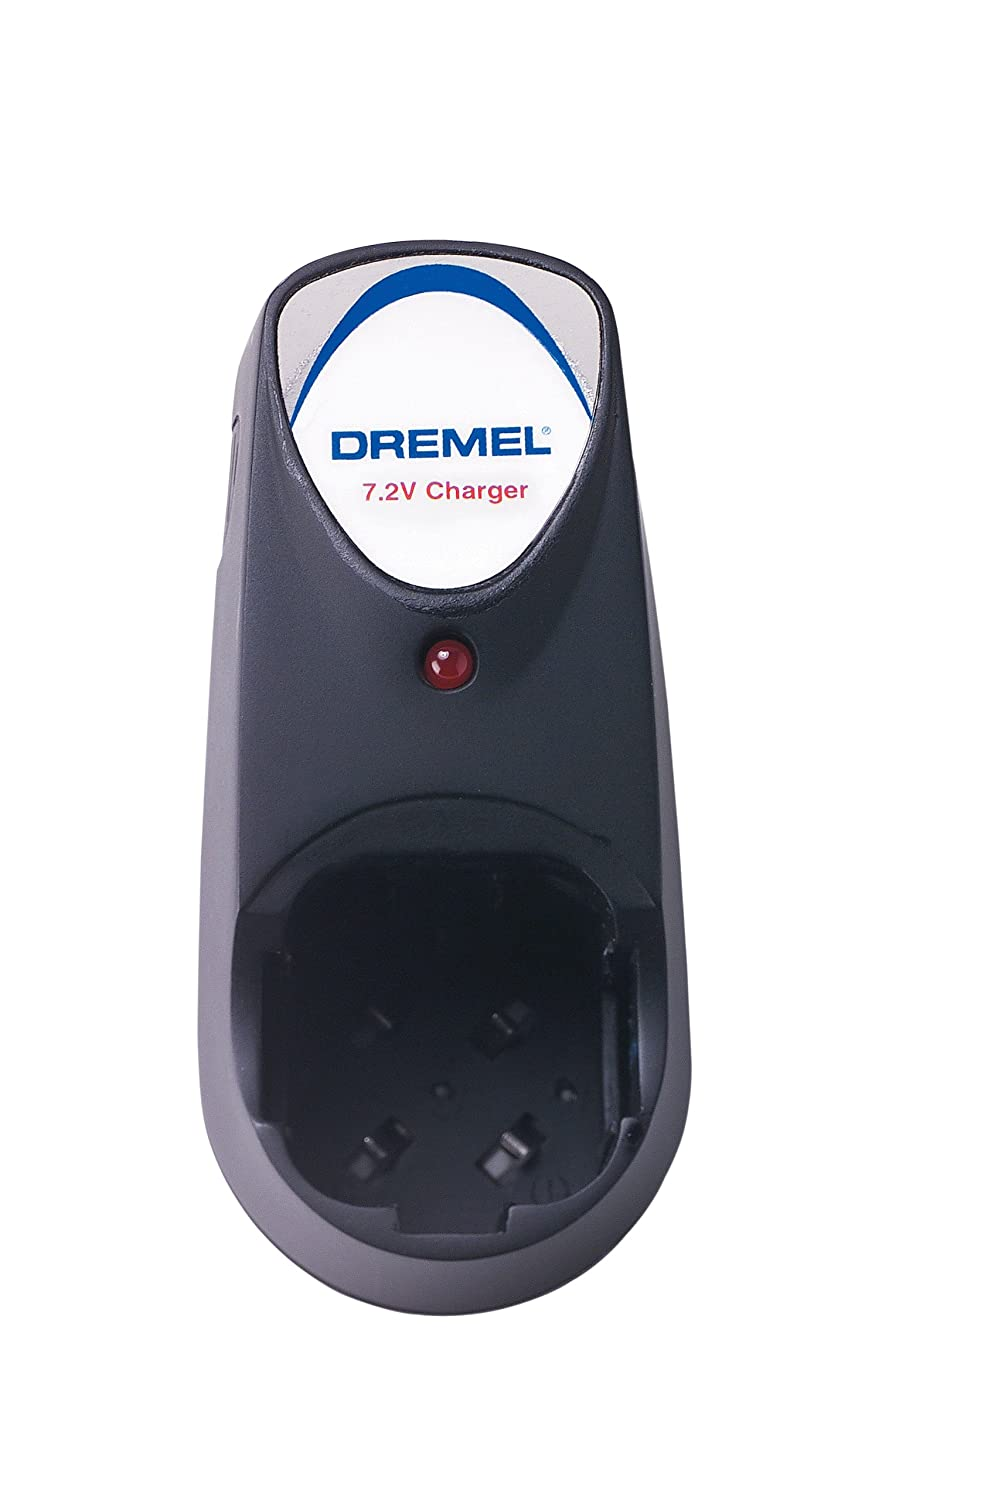 Dremel 758-01 7.2V Battery Charger for use with 7700-01 & 02